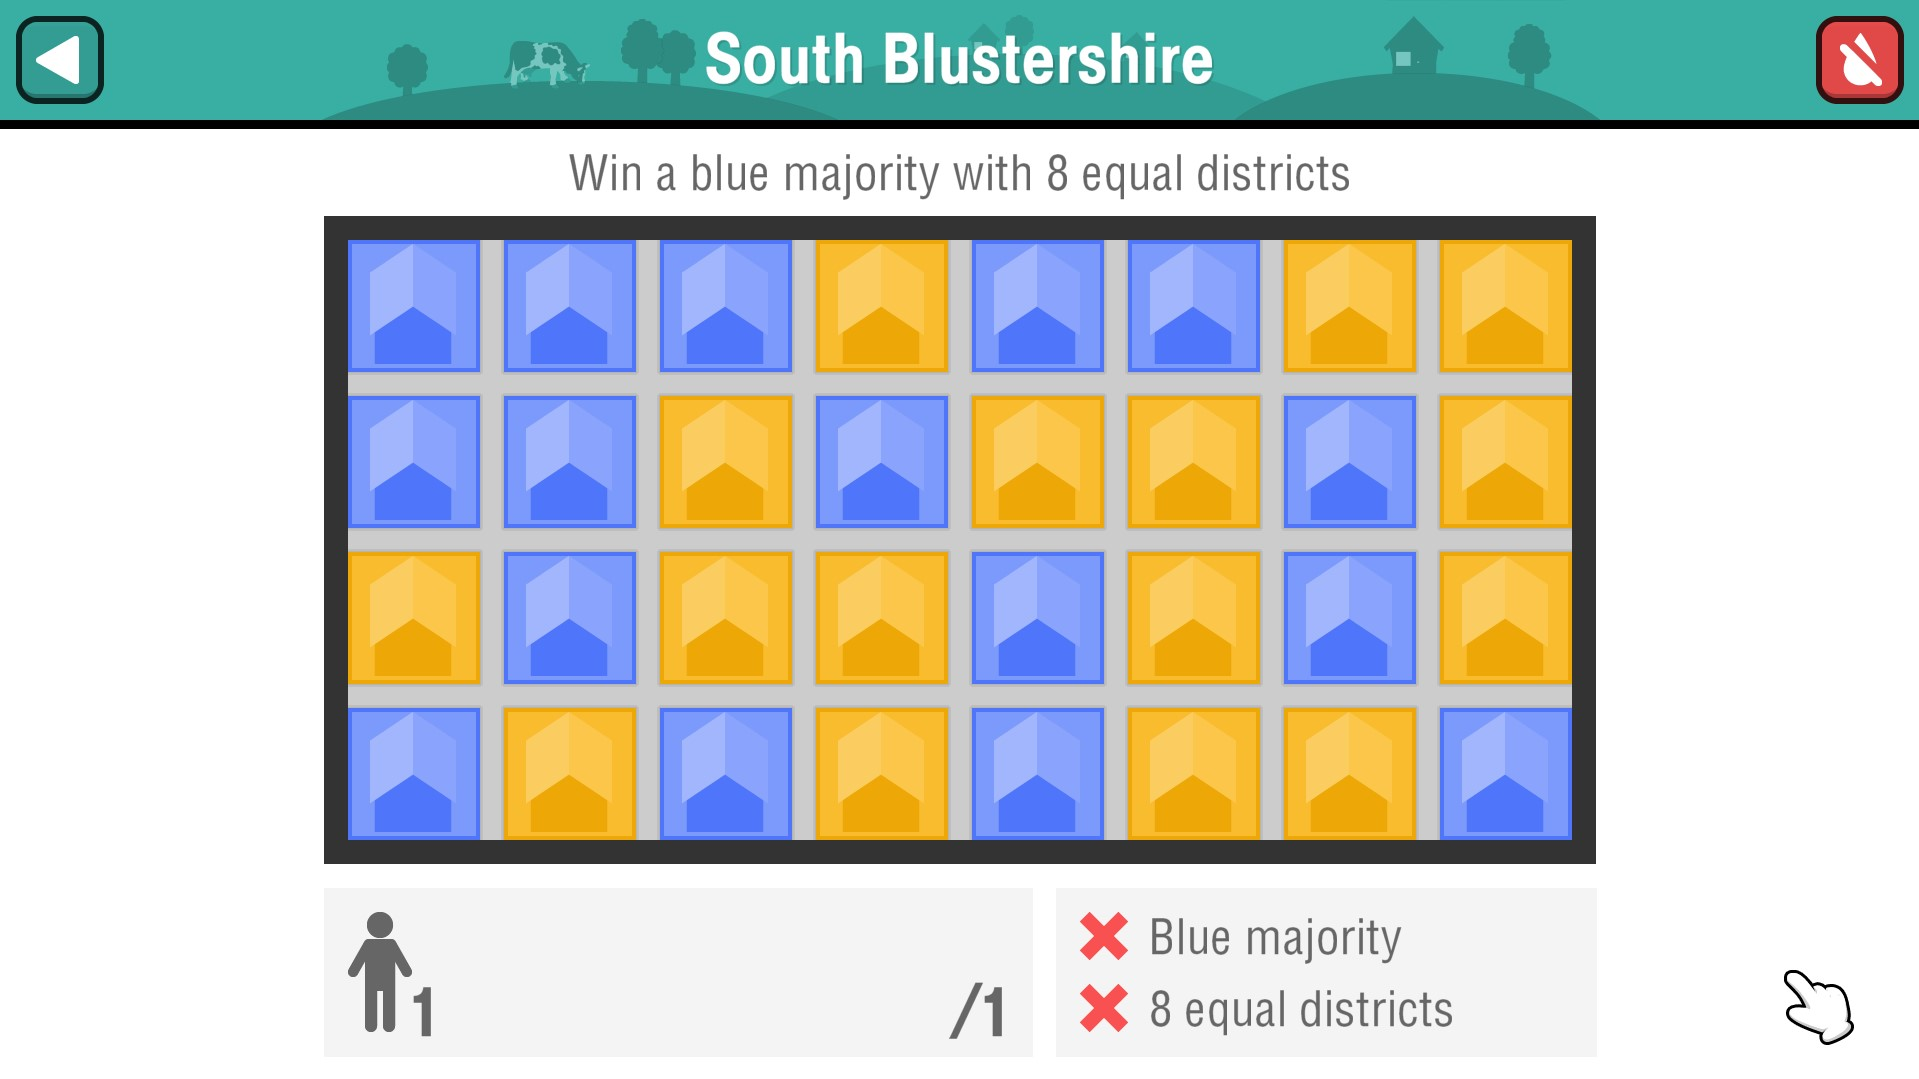 South Blustershire